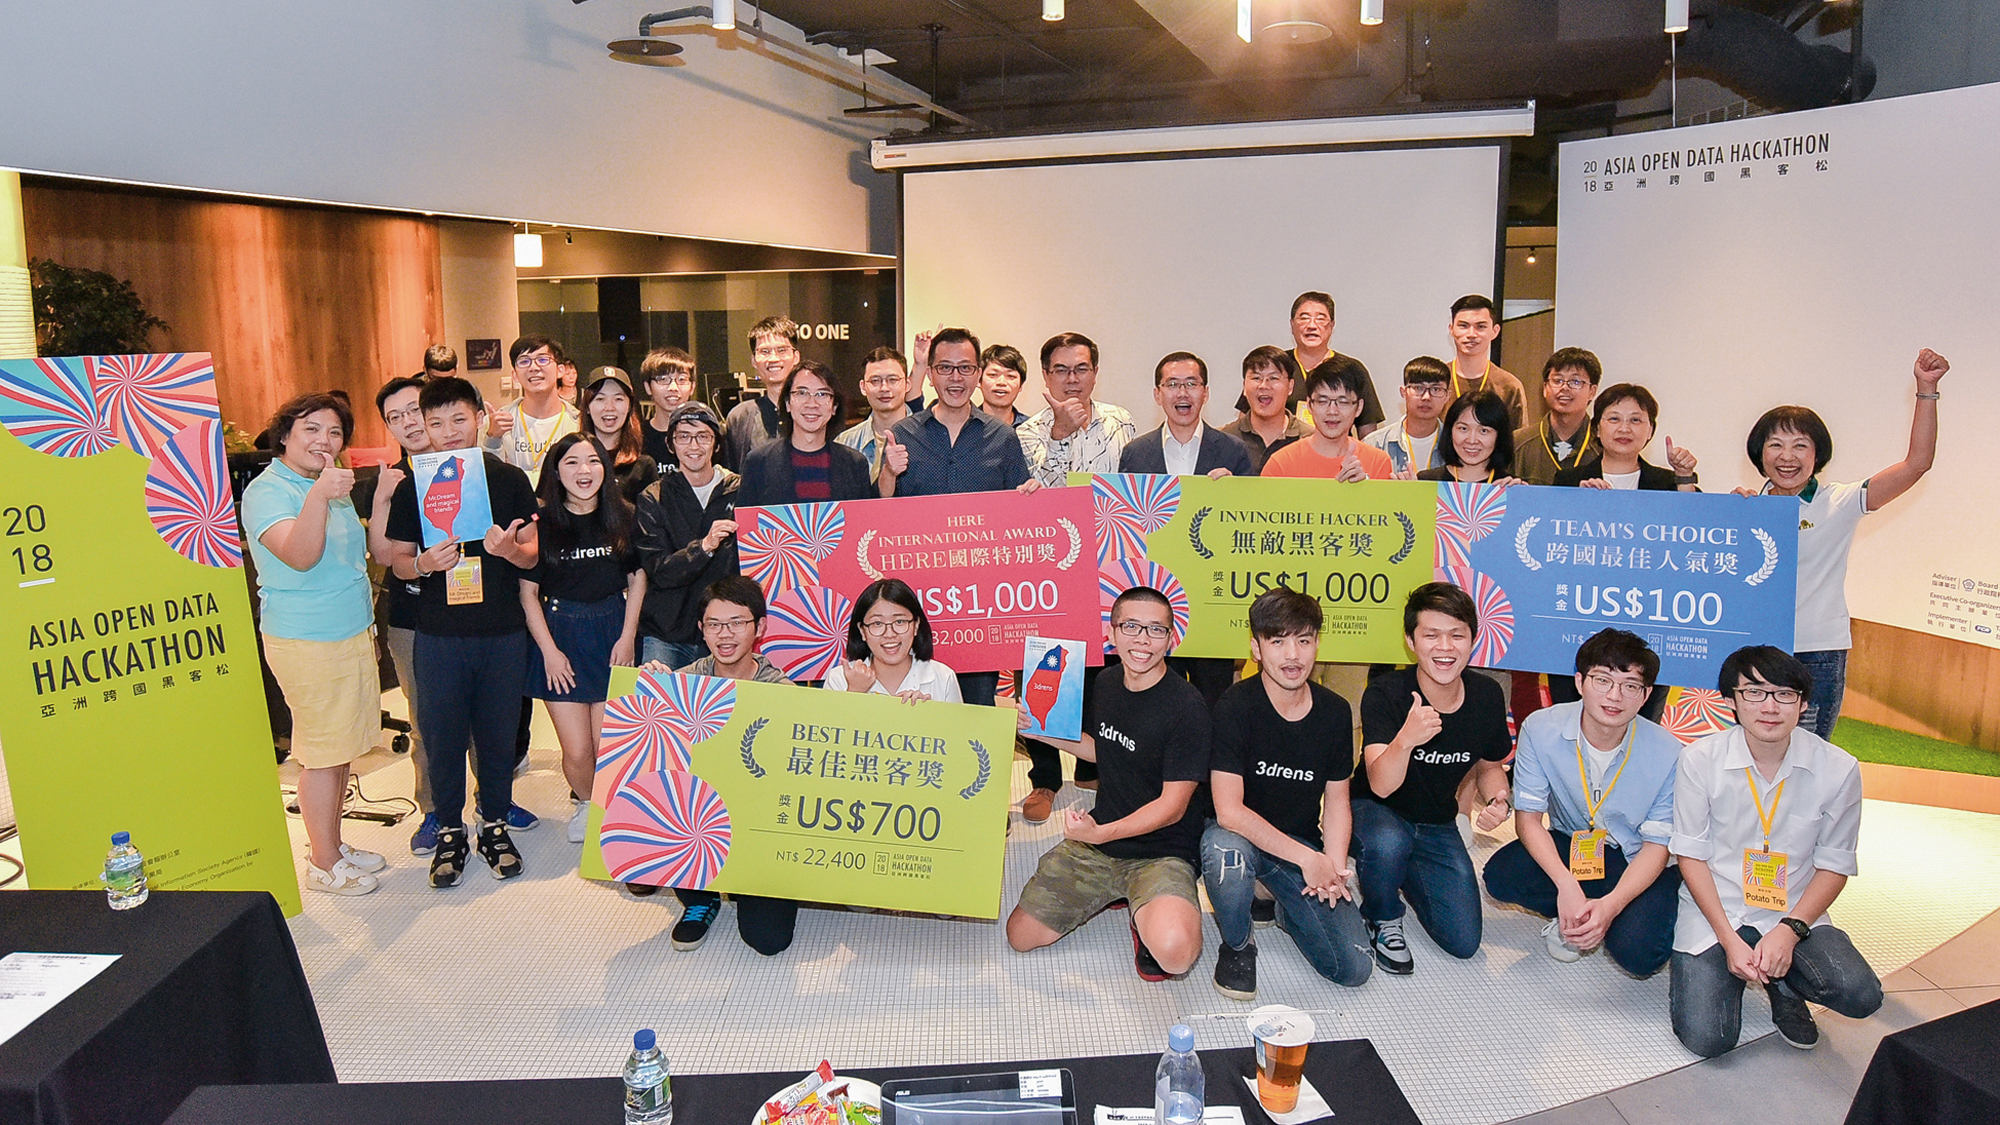 At the annual Asia Open Data Hackathon, international experts in various fields share ideas and inspire each other. (courtesy of ODA)